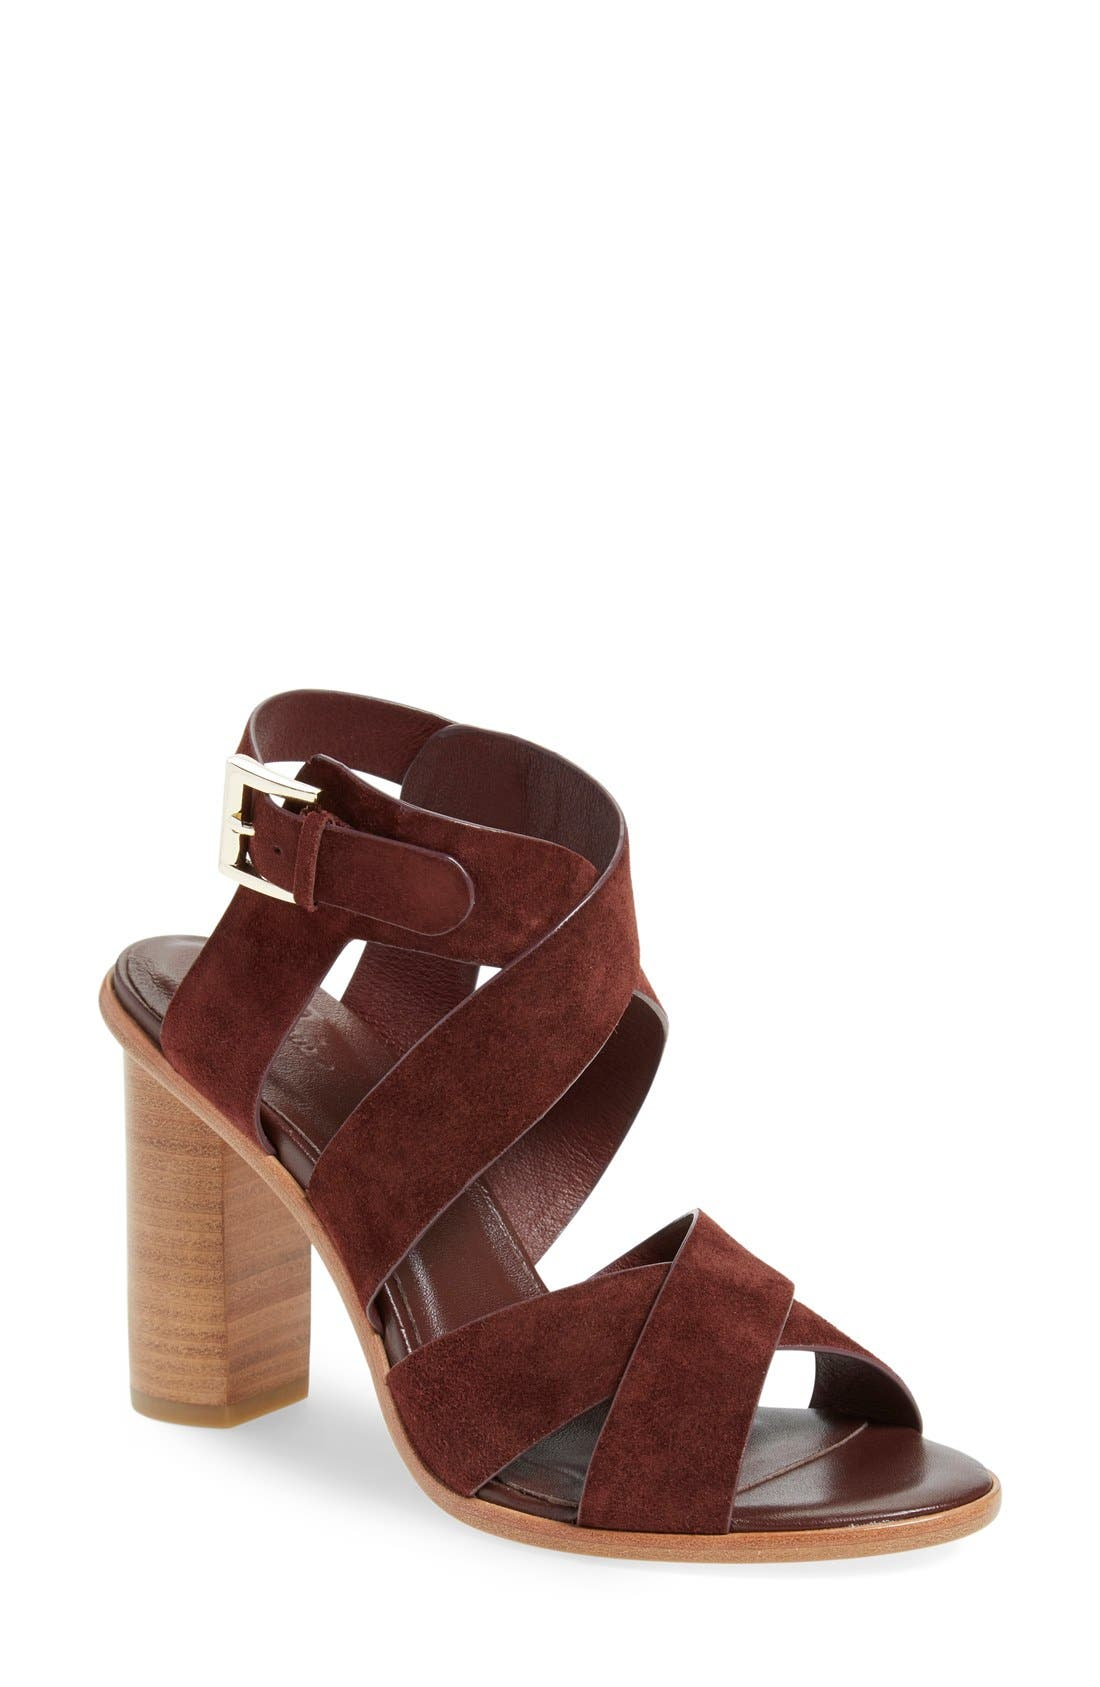 'Avery' Crisscross Block Heel Sandal,                             Main thumbnail 1, color,                             Oxblood Suede